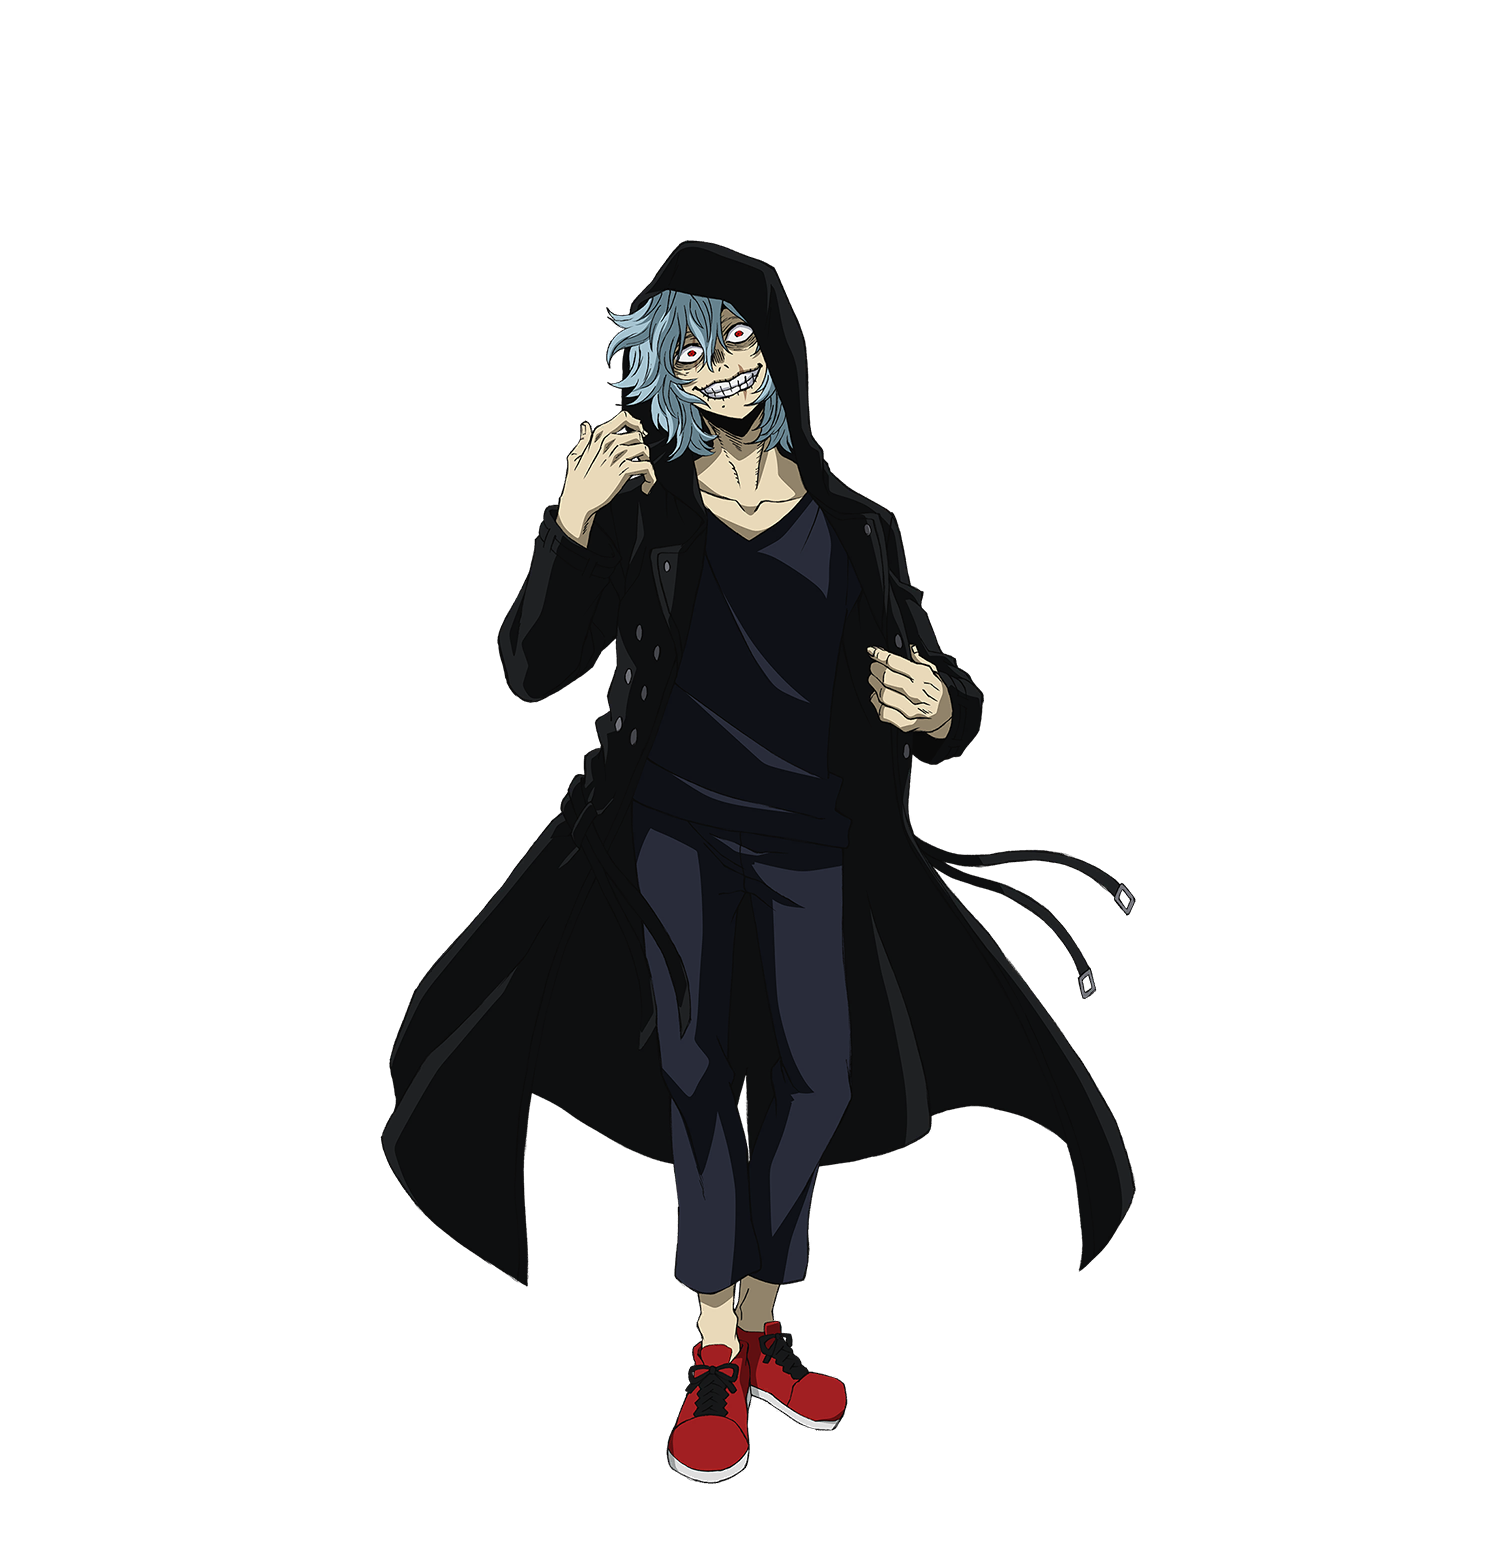 Crazy Look Tomura Shigaraki Render (My Hero One's Justice 2).png